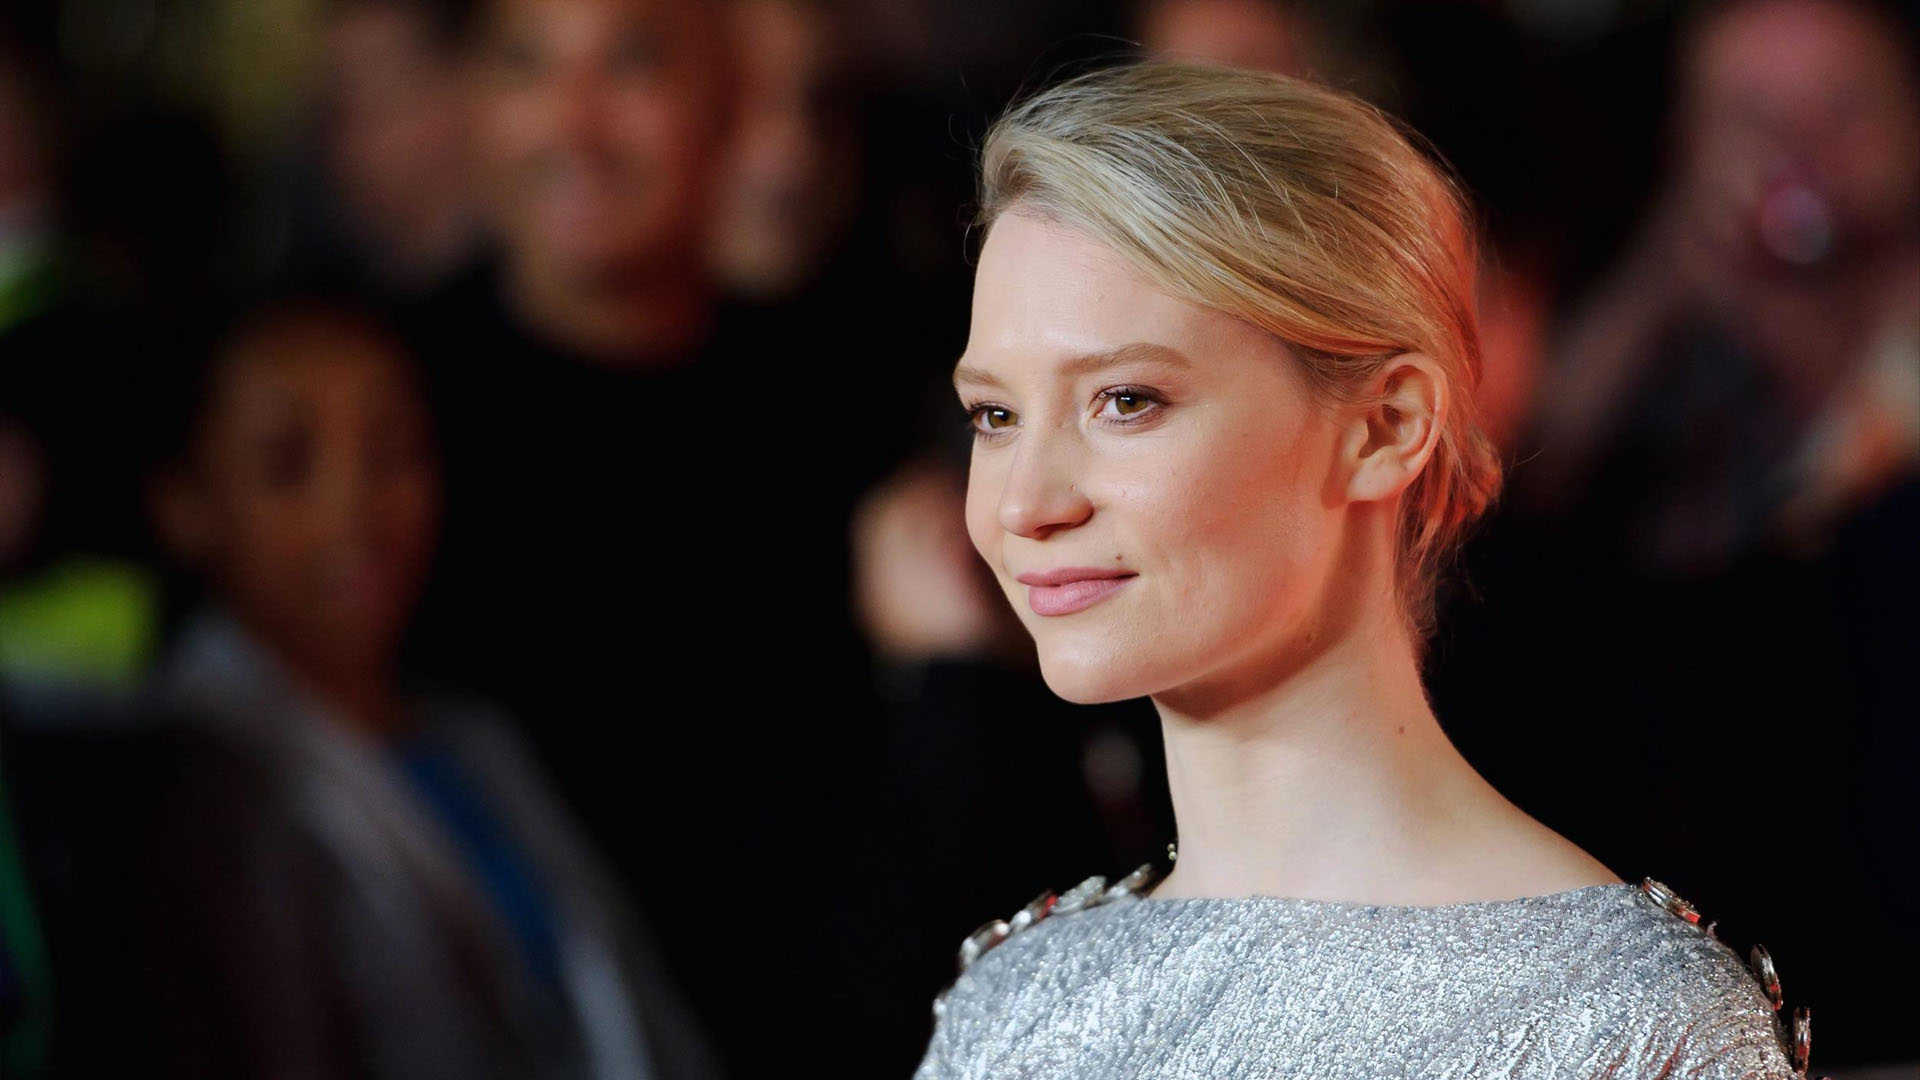 Mia Wasikowska high resolution wallpapers